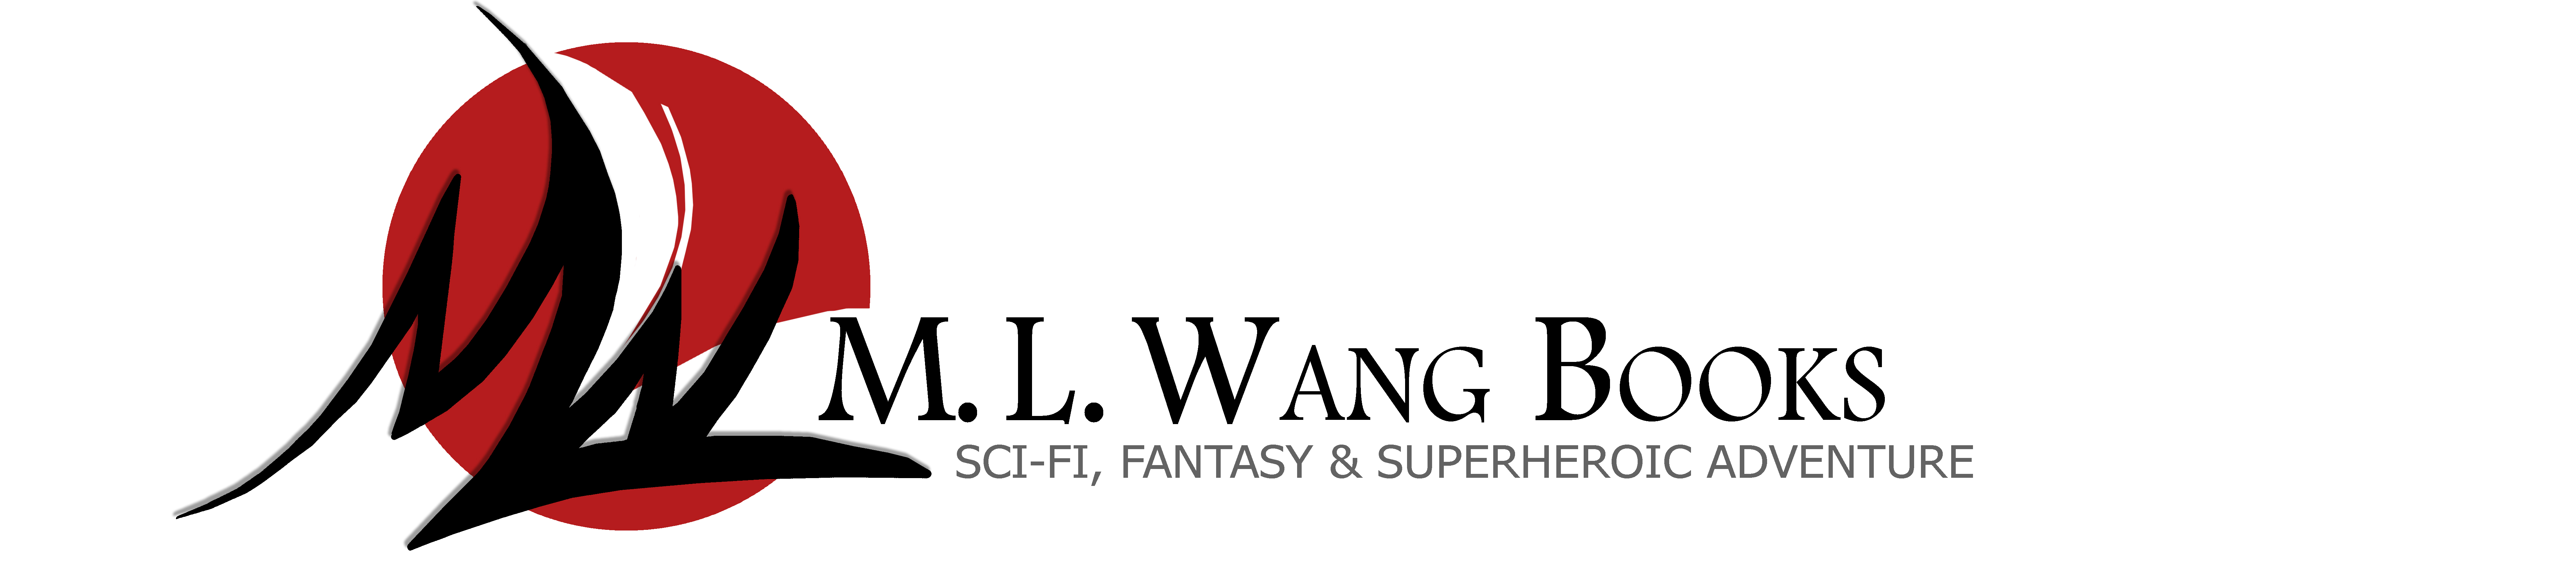 M. L. Wang Books